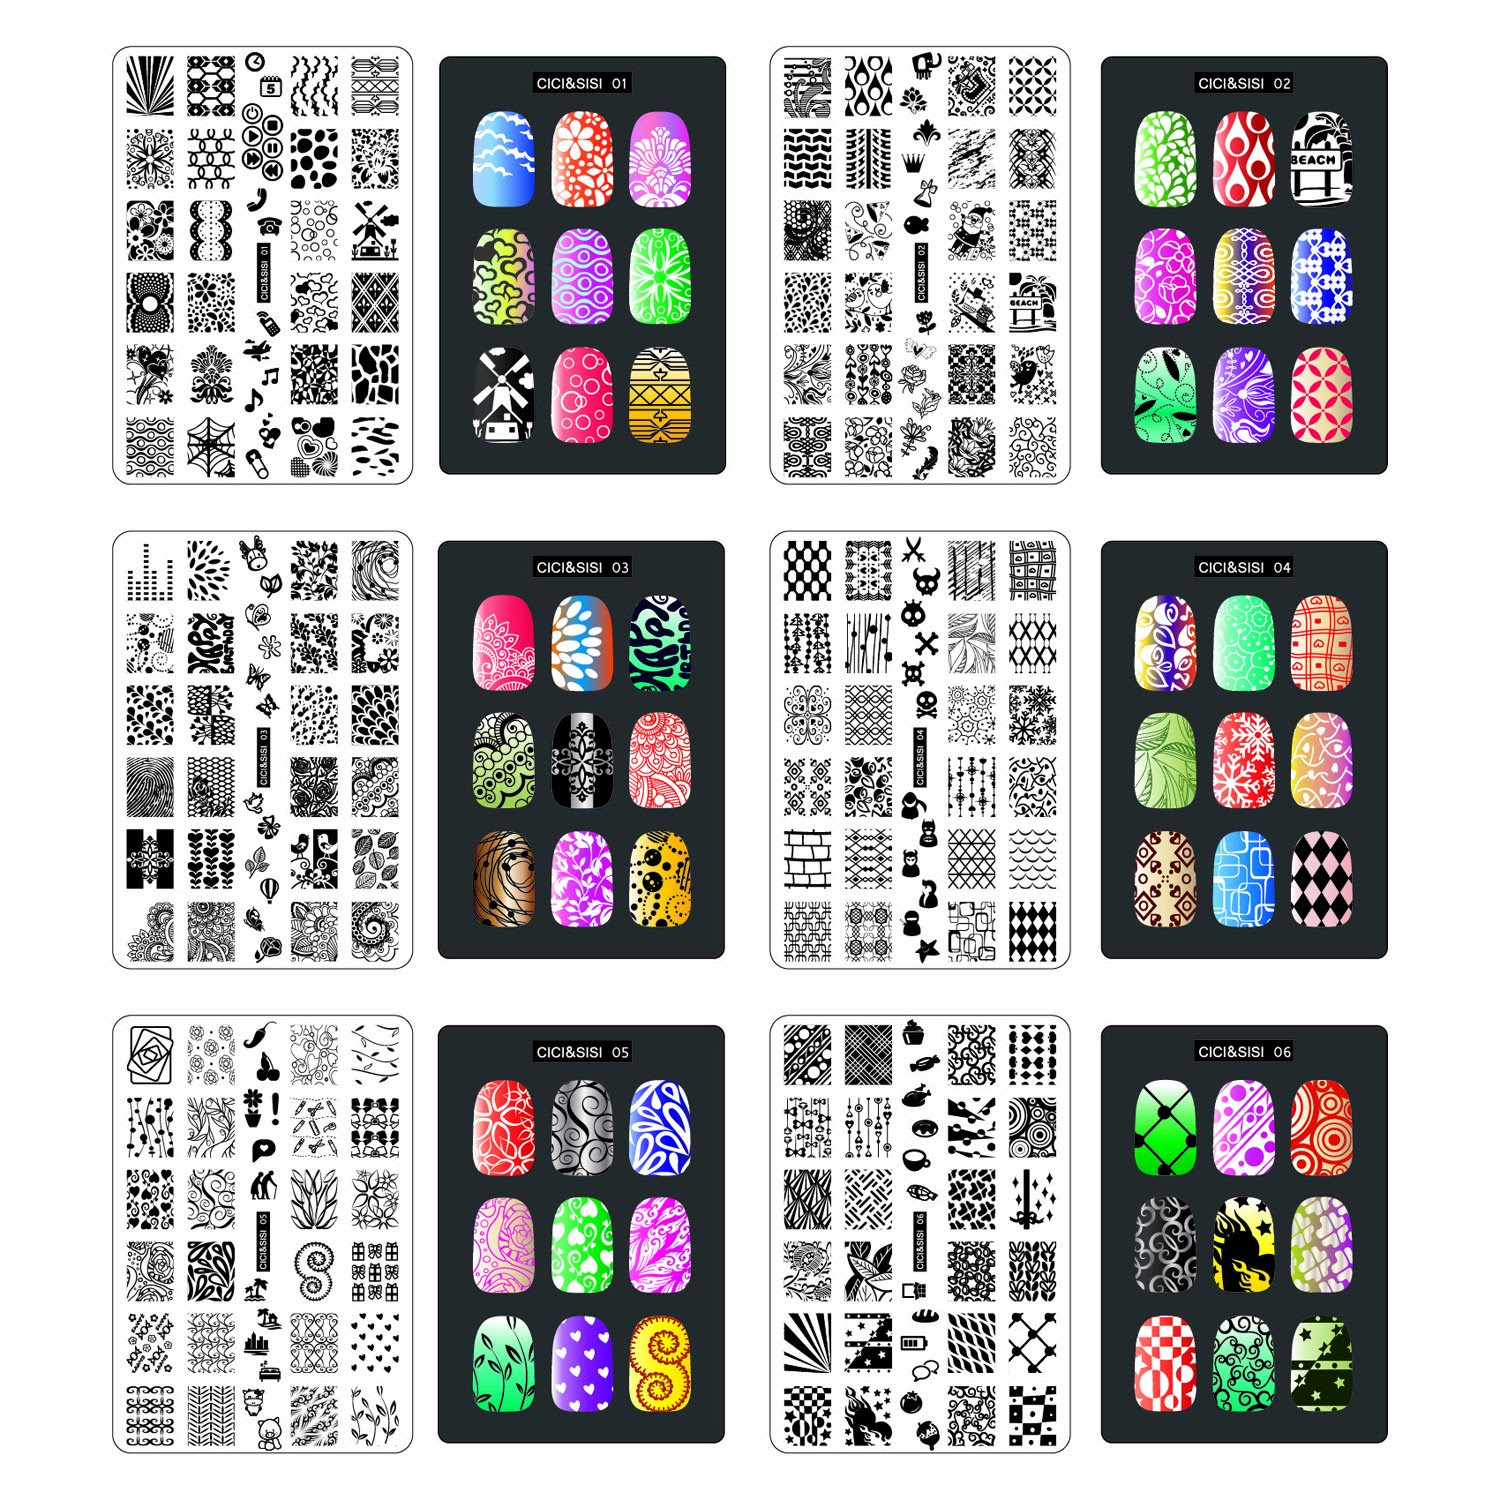 Lacquer Lockdown - Cici & Sisi, Cici & Sisi Set 1, Cici & Sisi Set 2, stamping, nail art, full sized nail images, new image plates 2014, new stamping plates 2014, new nail art plates 2014, new plates 2014, easy nail art, simple nail art, jumbo plates, Cici and Sisi